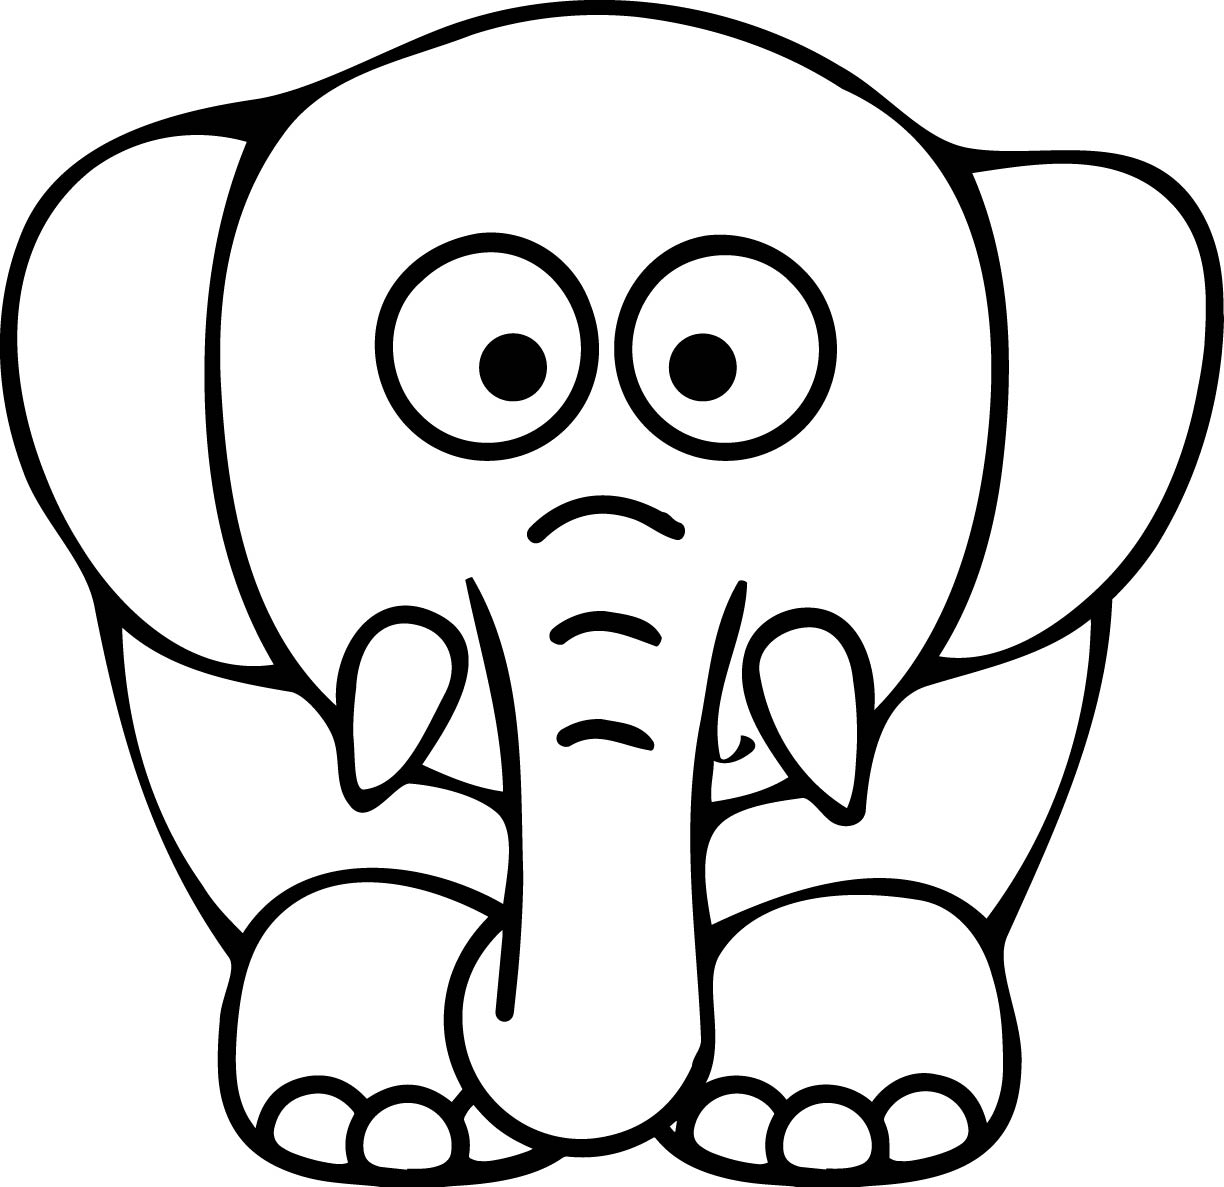 elephant coloring sheets printable print download teaching kids through elephant coloring sheets printable elephant coloring